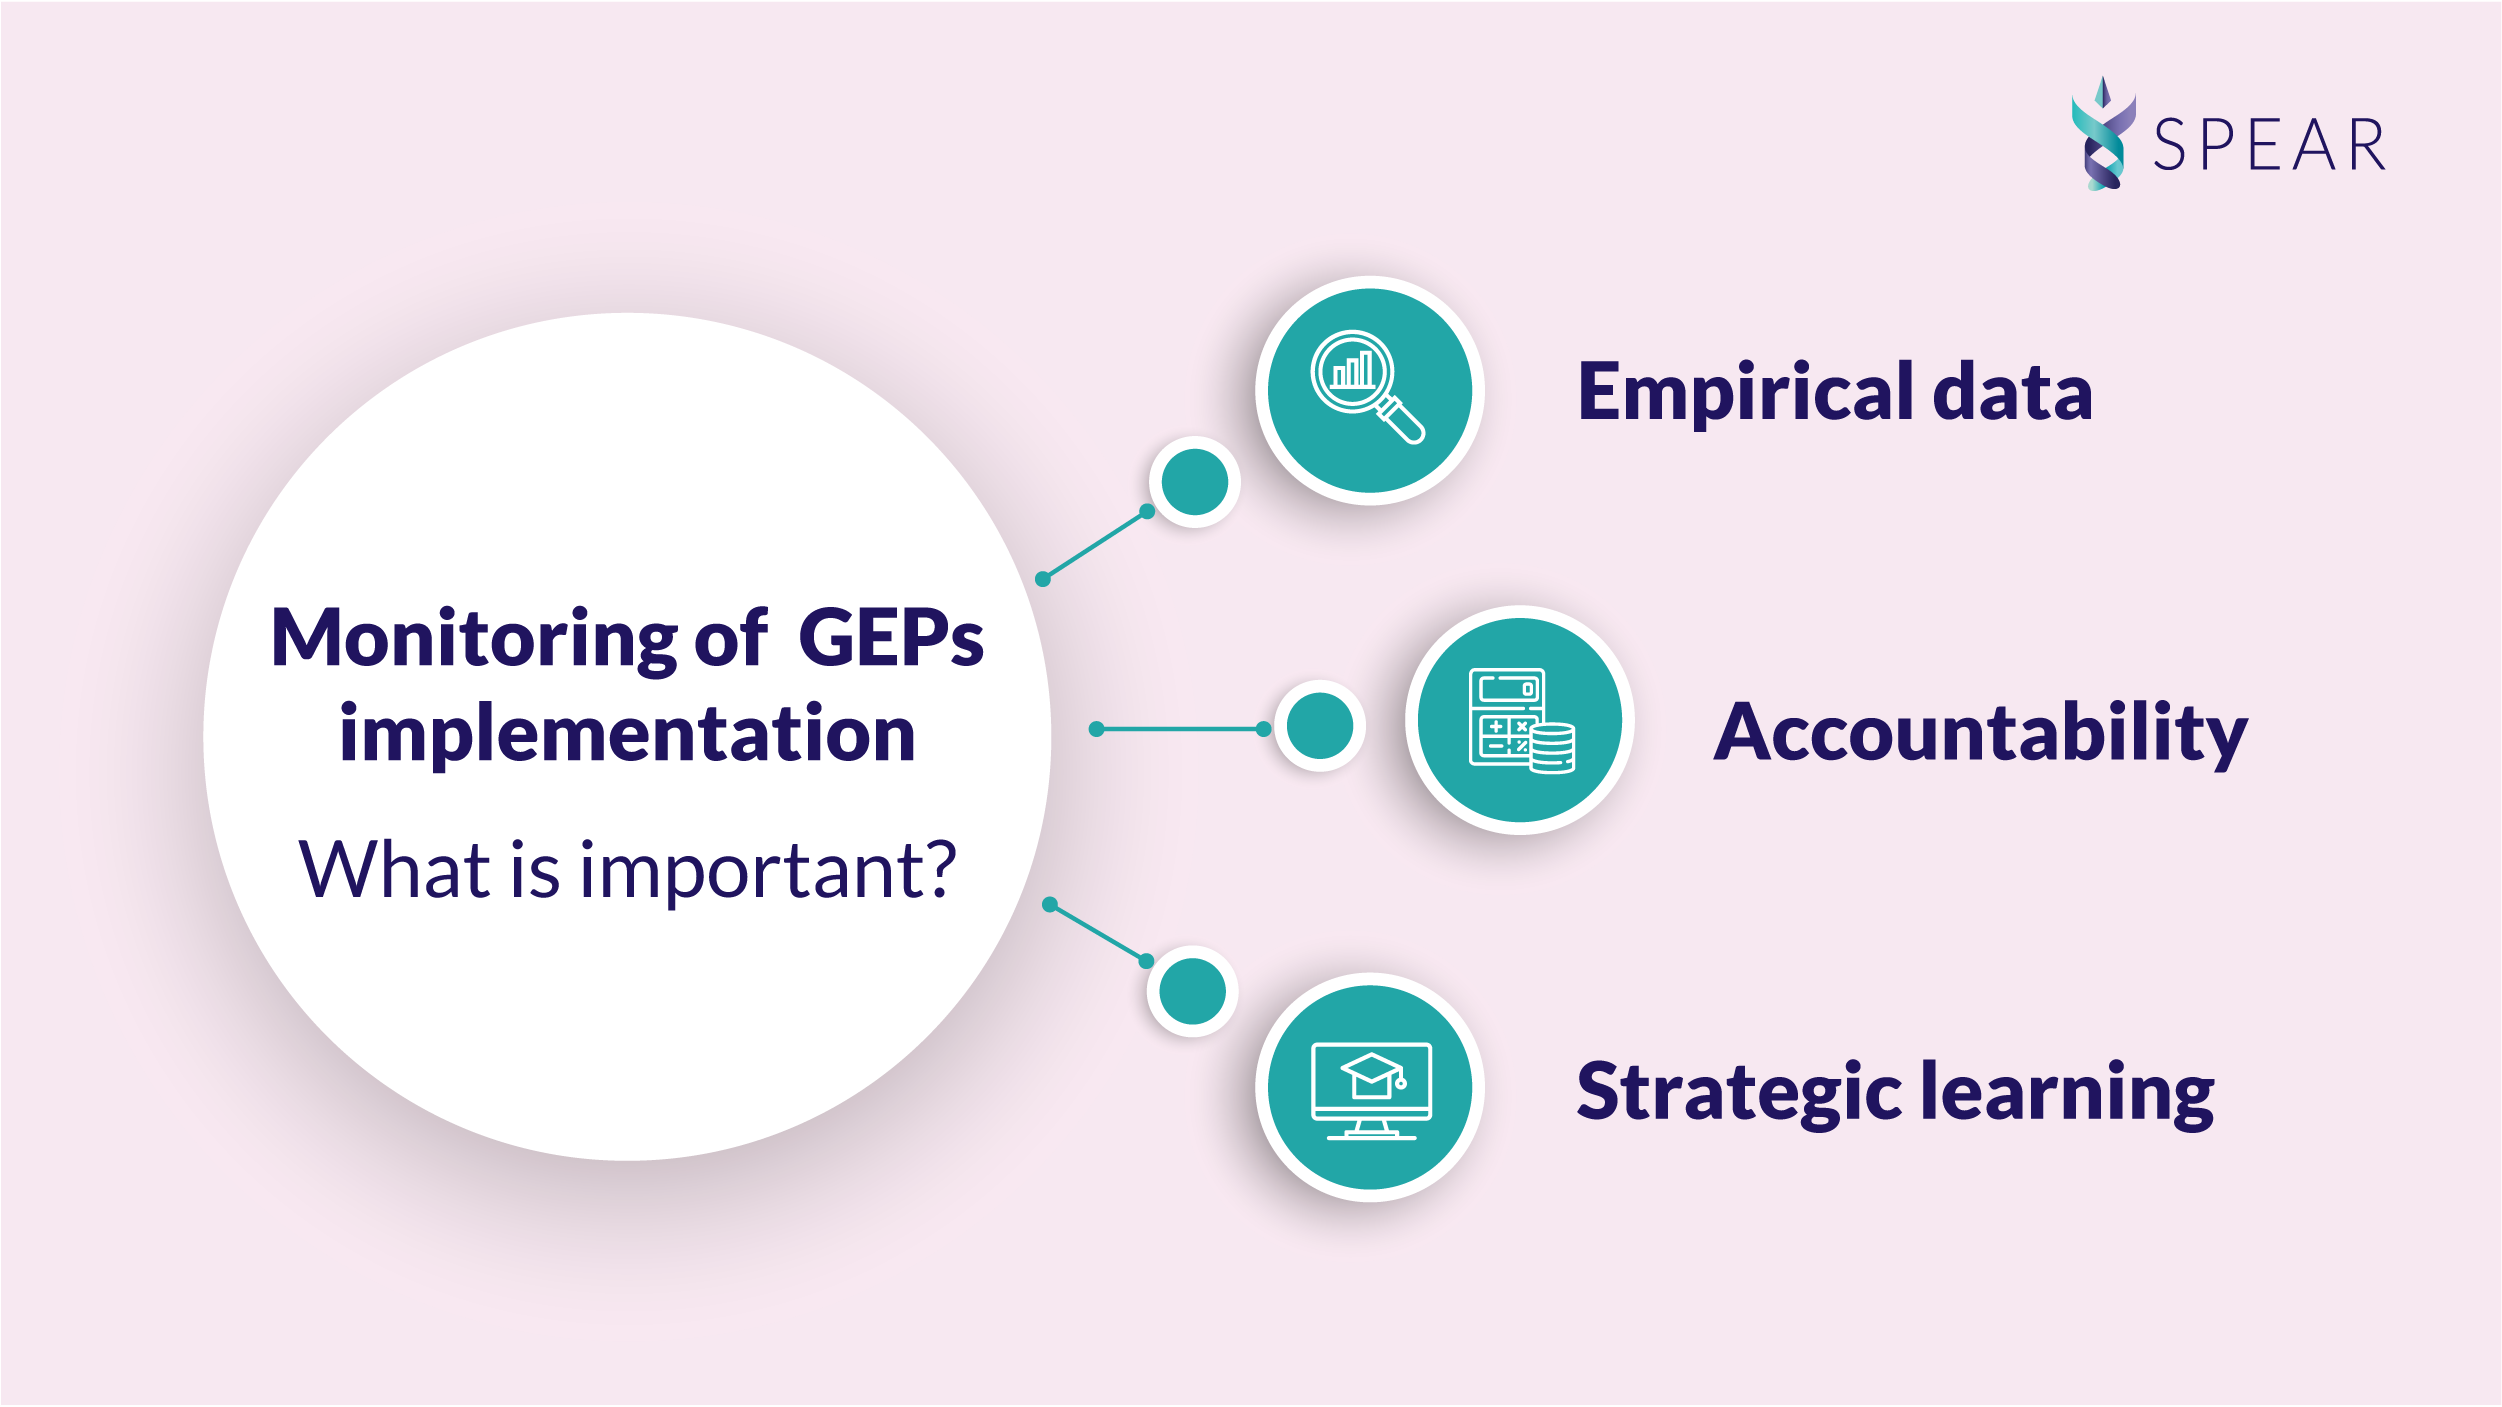 Monitoring of GEP implementation - why is it important?